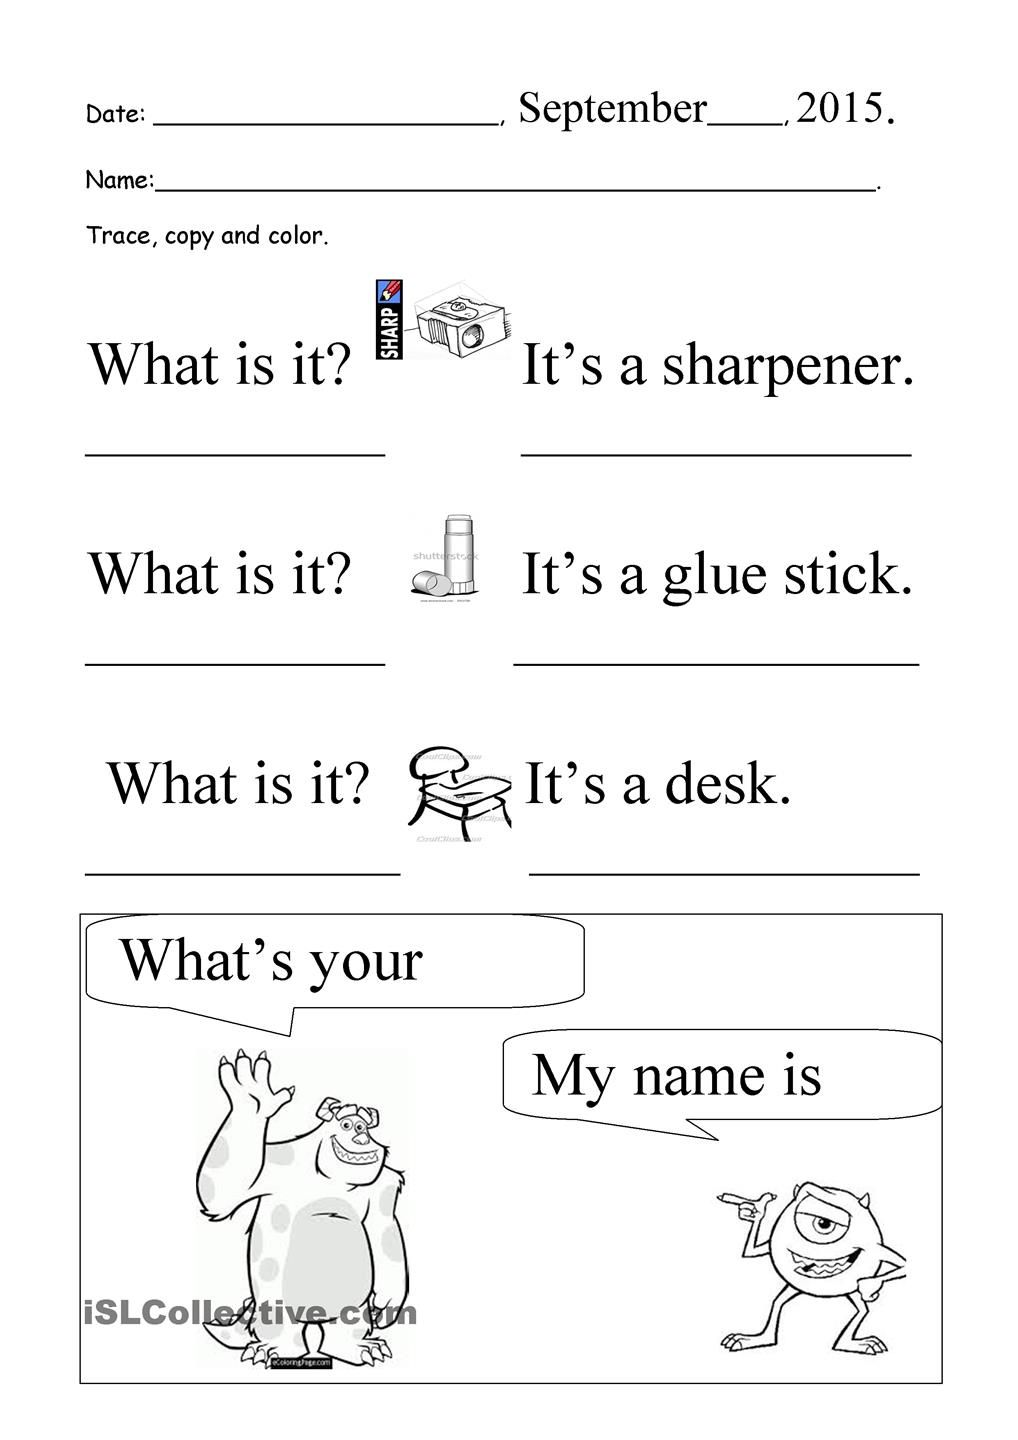 Worksheets Trace Your Name Worksheets what is it whats your name trace and copy places to visit copy